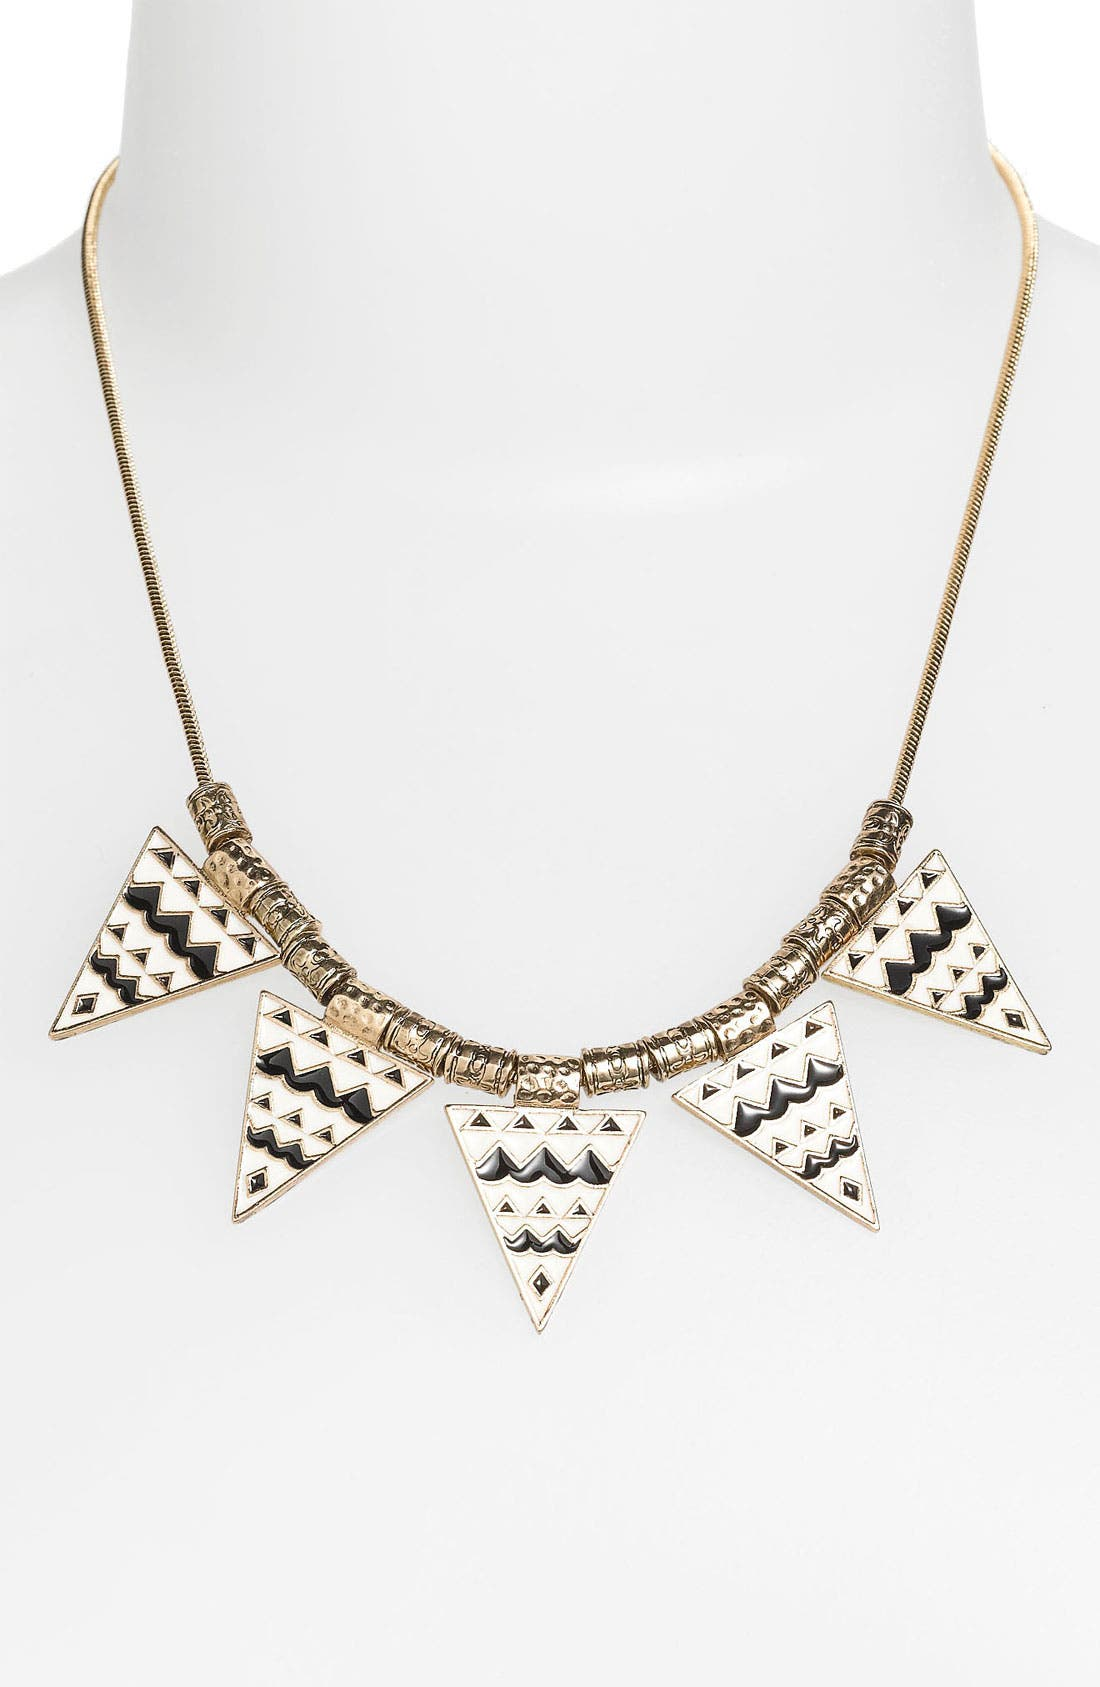 Main Image - Stephan & Co. 'Aztec Triangle' Statement Necklace